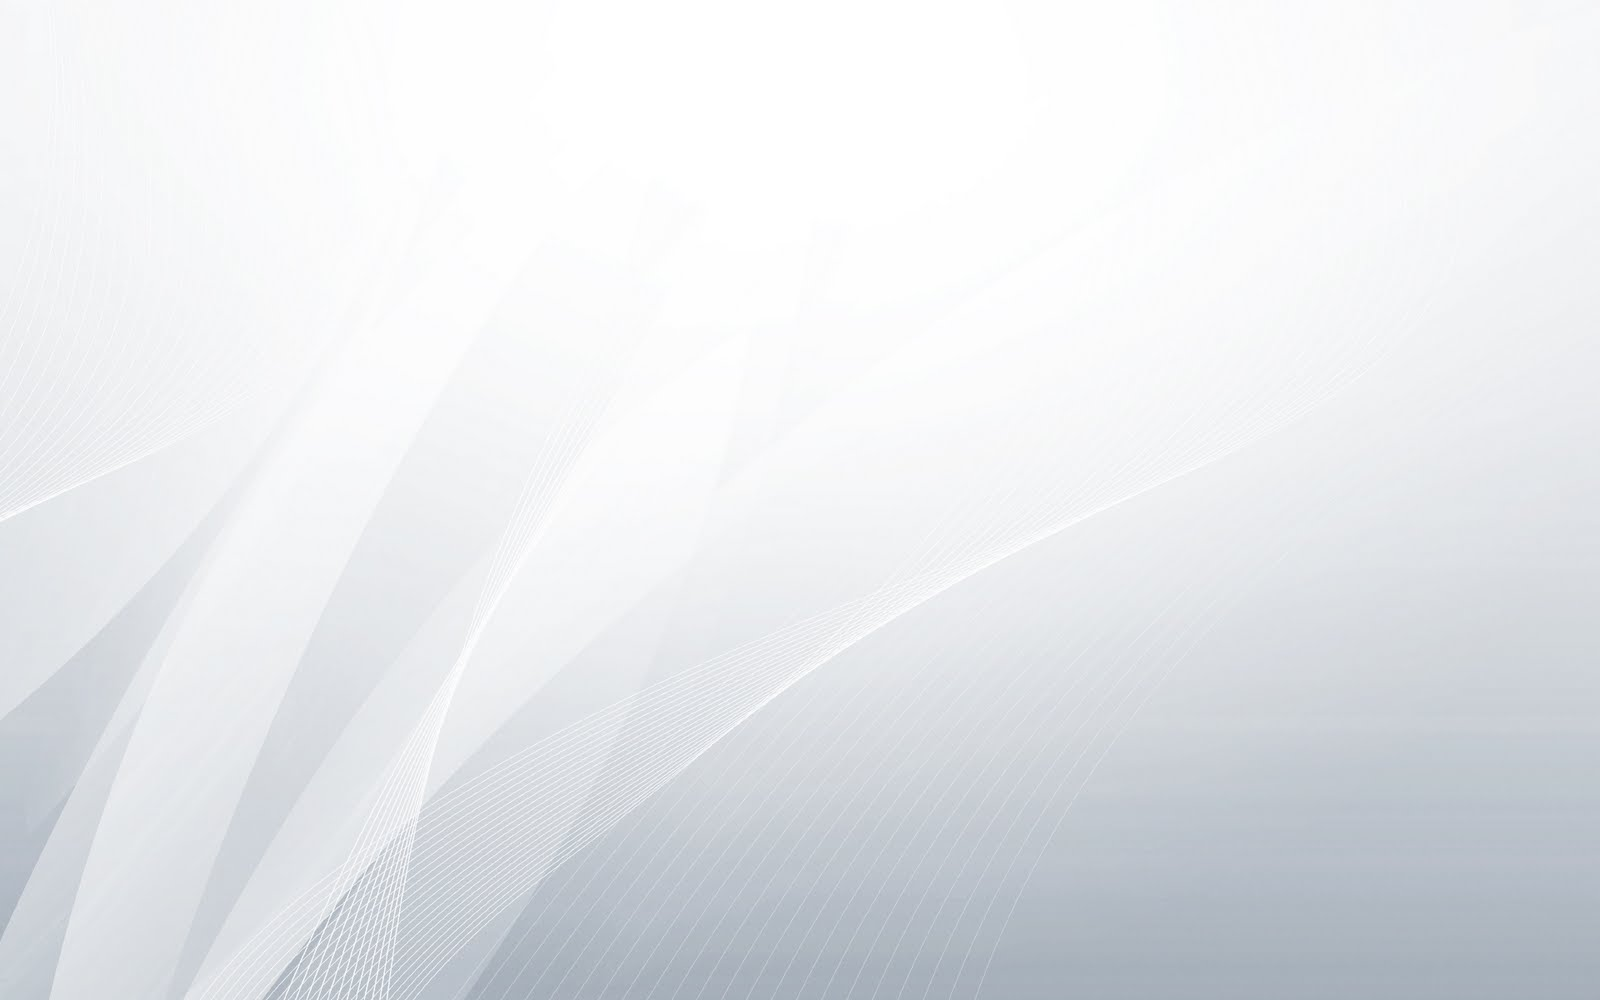 White Background Wallpaper Hd Wallpapersafari